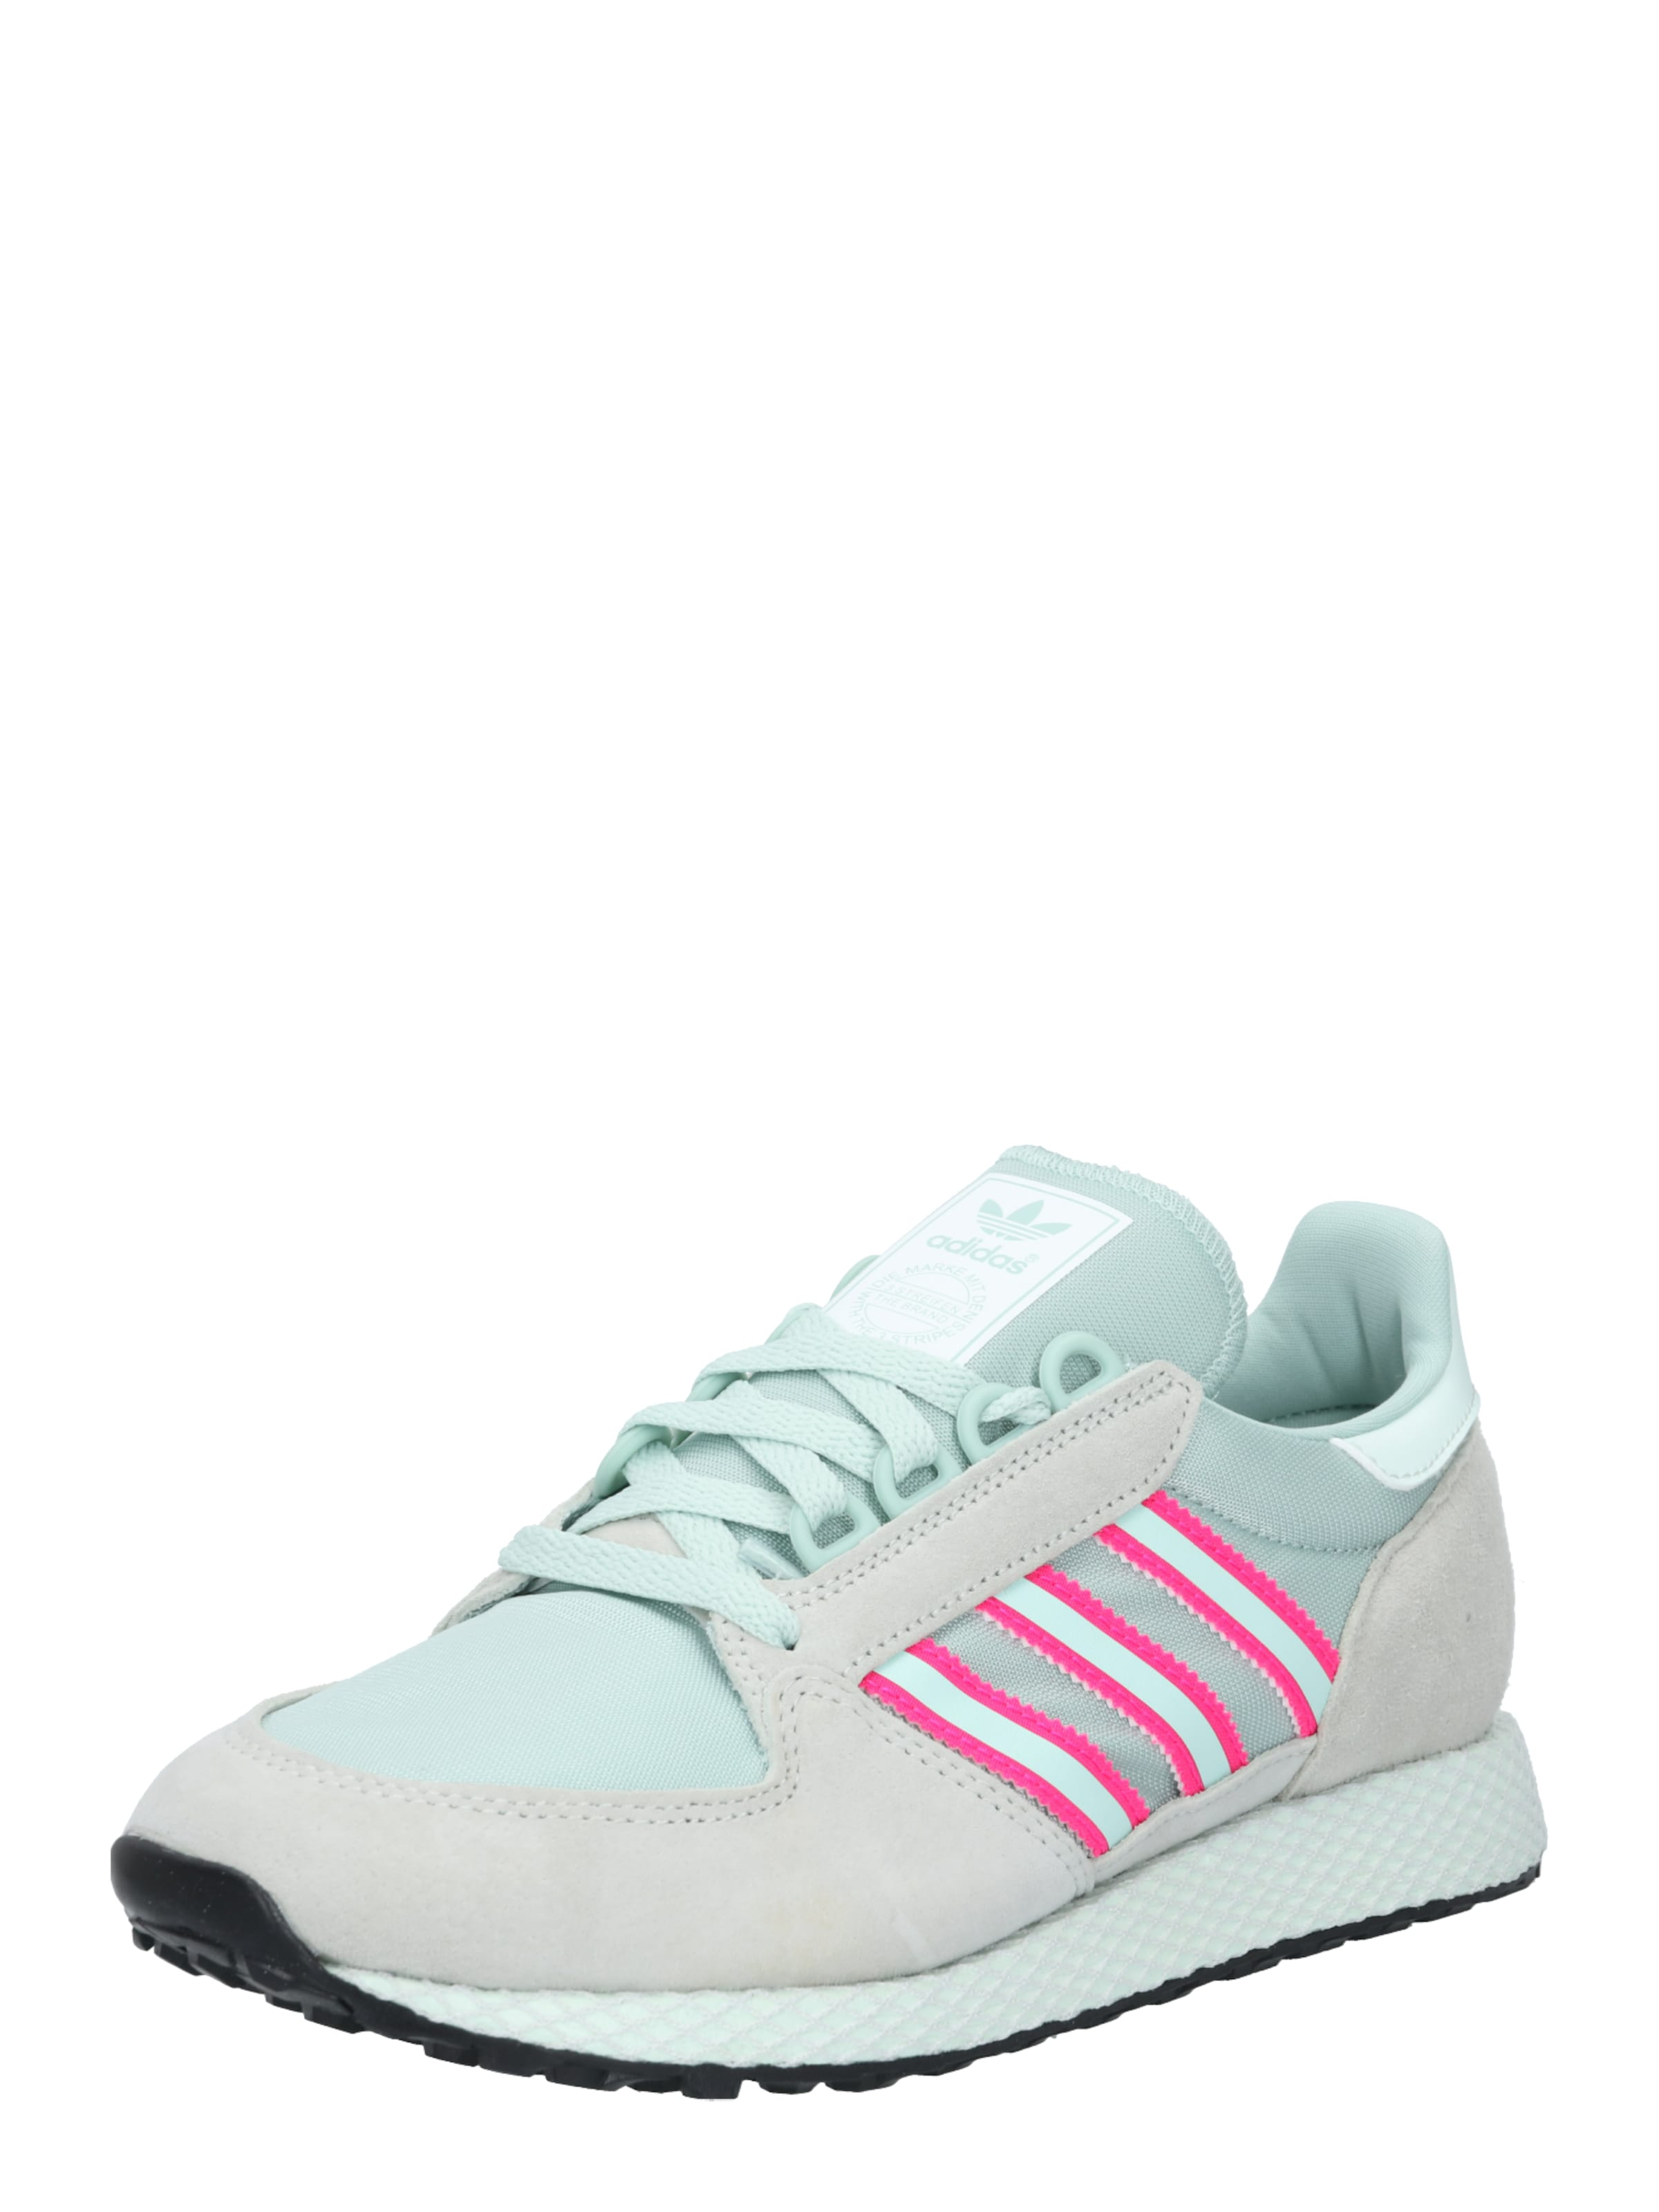 ADIDAS ORIGINALS Sneakers laag Forest Grove in Mintgroen / Pink Leer Ado2127001000001